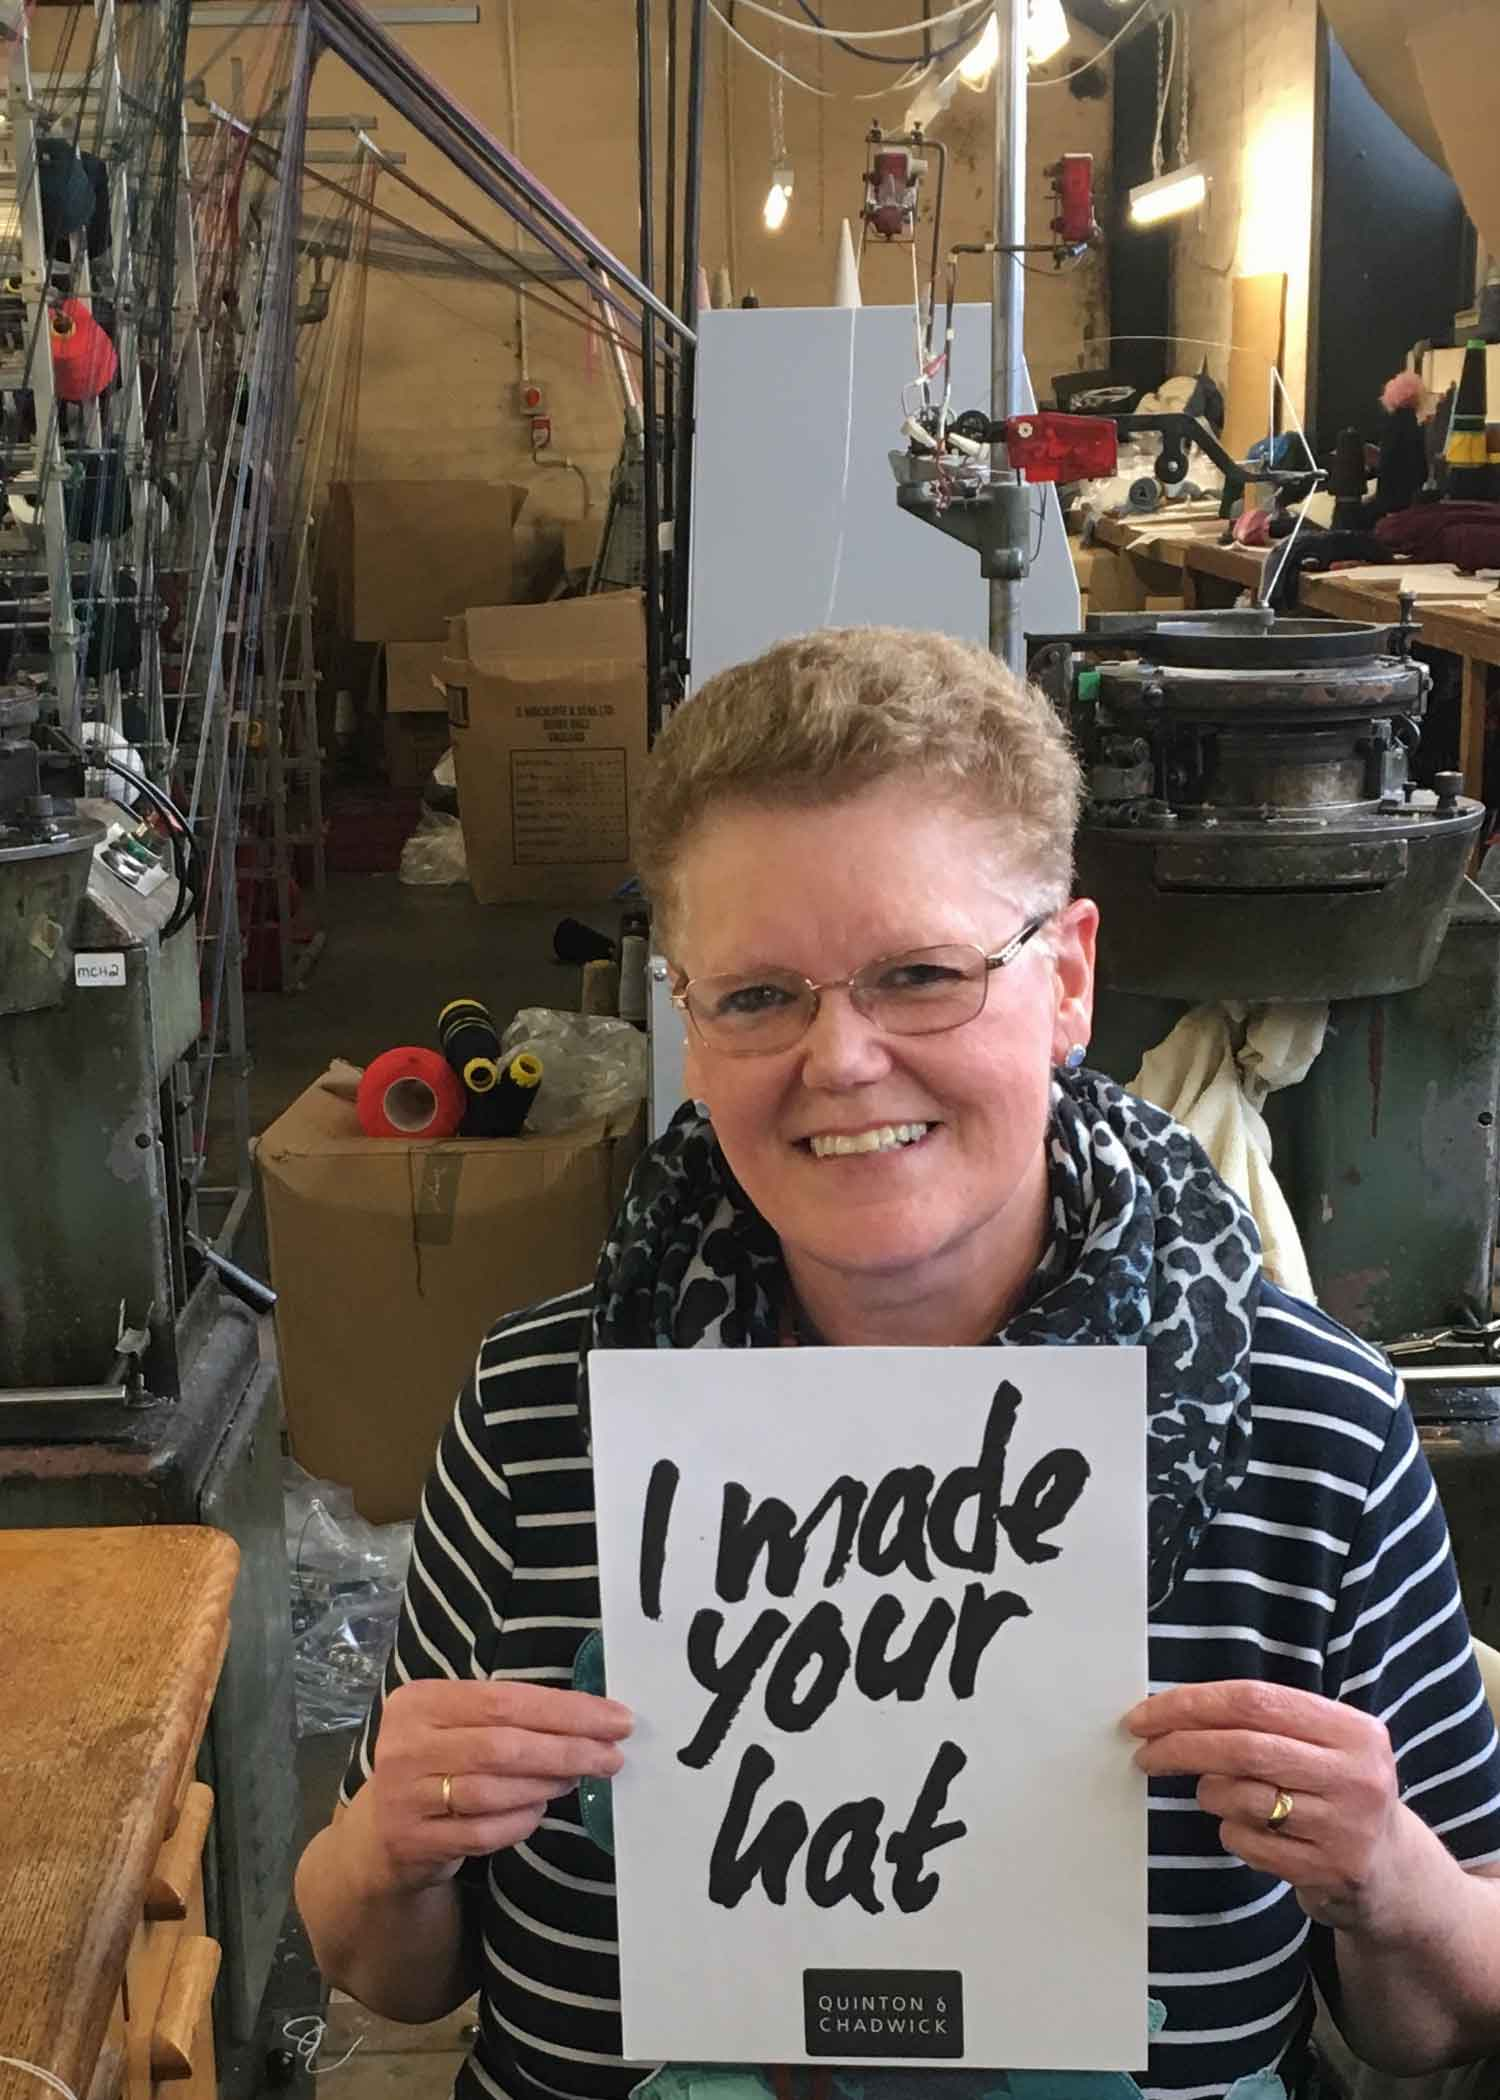 Fashion Revolution.Org - Every year we post photographs of the lovely people who make our products. Inspired by the Fashion Revolution movement which is encouraging people to ask the simple question 'who made my clothes' about what they wear. The Fashion Revolution has pushed the industry to become more transparent. Highlighting the problems of Fast Fashion and helping ensure that workers rights are upheld everywhere.We make everything here in the UK so we are proud to be able to prove not only authenticity of design but of provenance too.